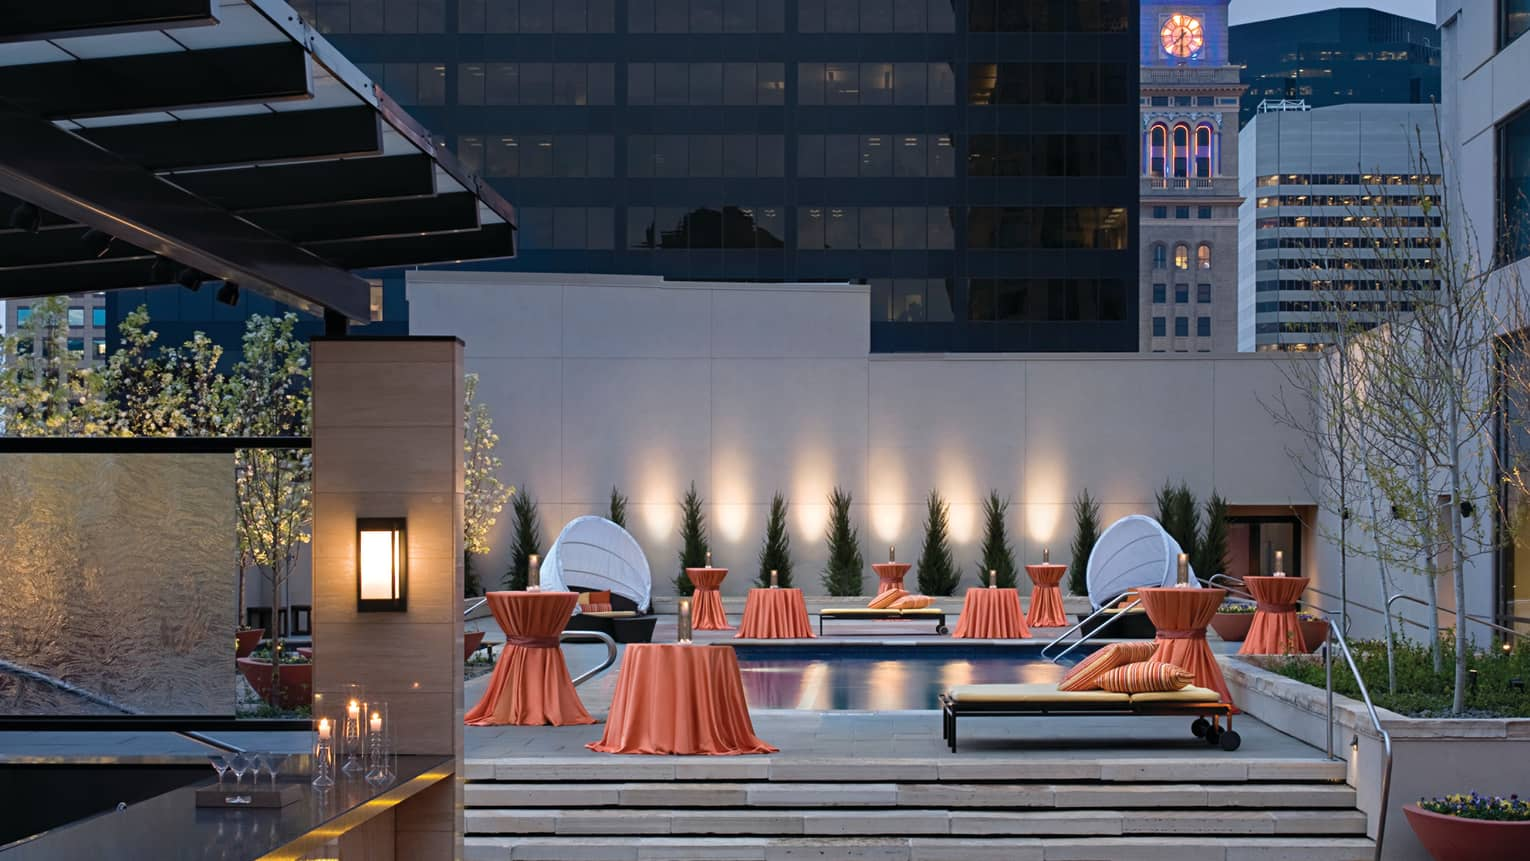 Rooftop bar, orange linens over small tables around outdoor pool